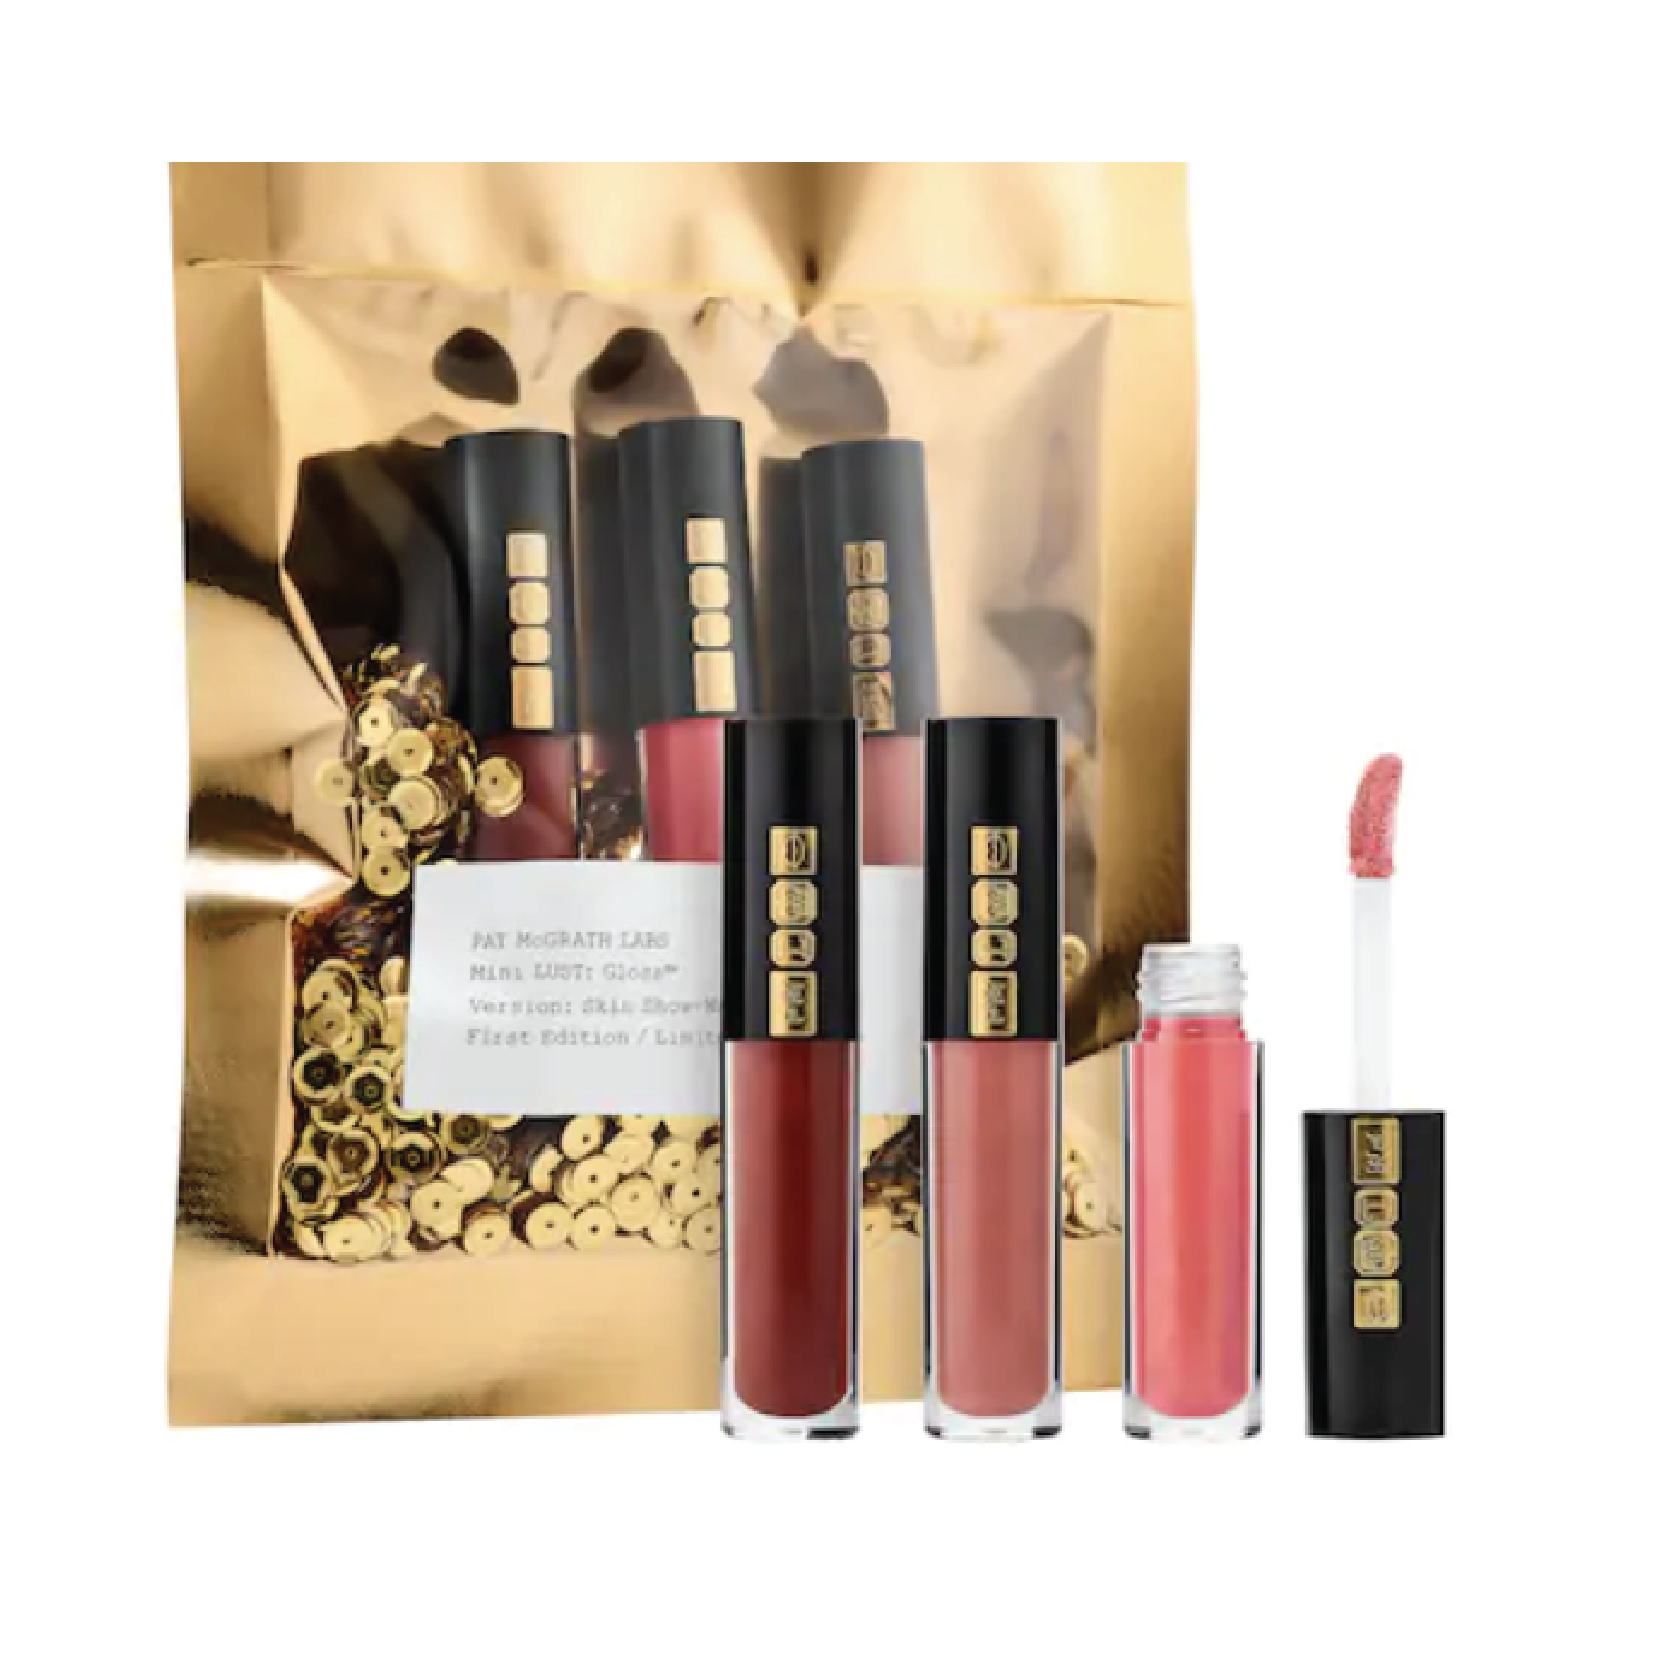 Pat McGrath Labs Mini Lust Gloss Trio - $25 at SephoraPat McGrath is iconic in the makeup world and this is the perfect affordable gift with luxury items.